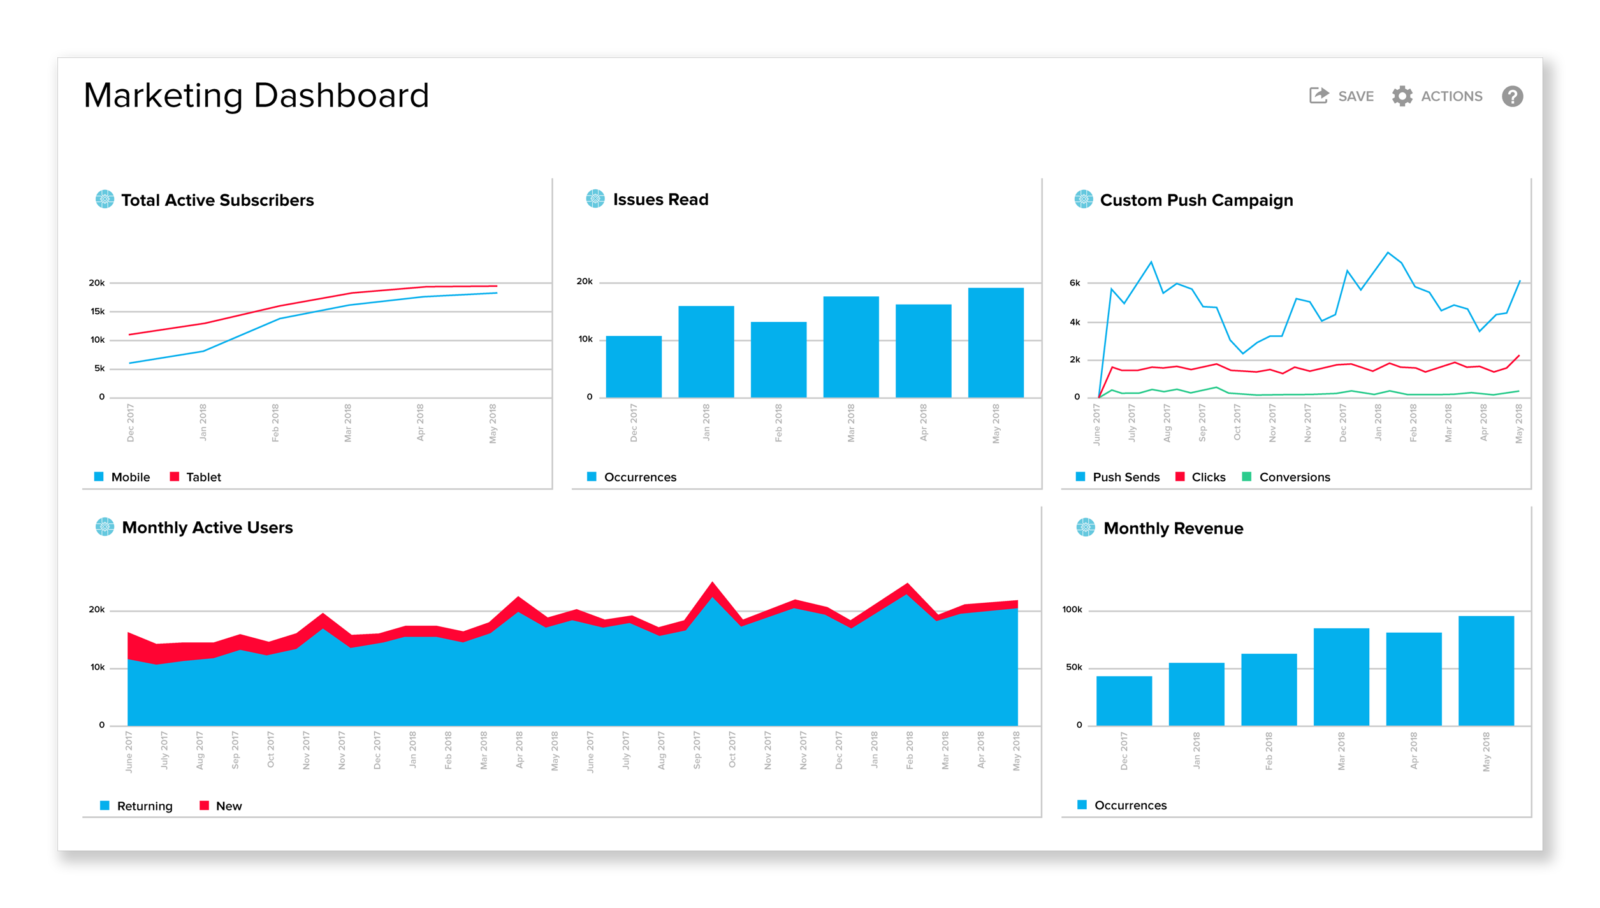 FULLY CUSTOMIZABLE DASHBOARD: REAL-TIME ANALYTICS FOR DATA-DRIVEN APP MARKETING